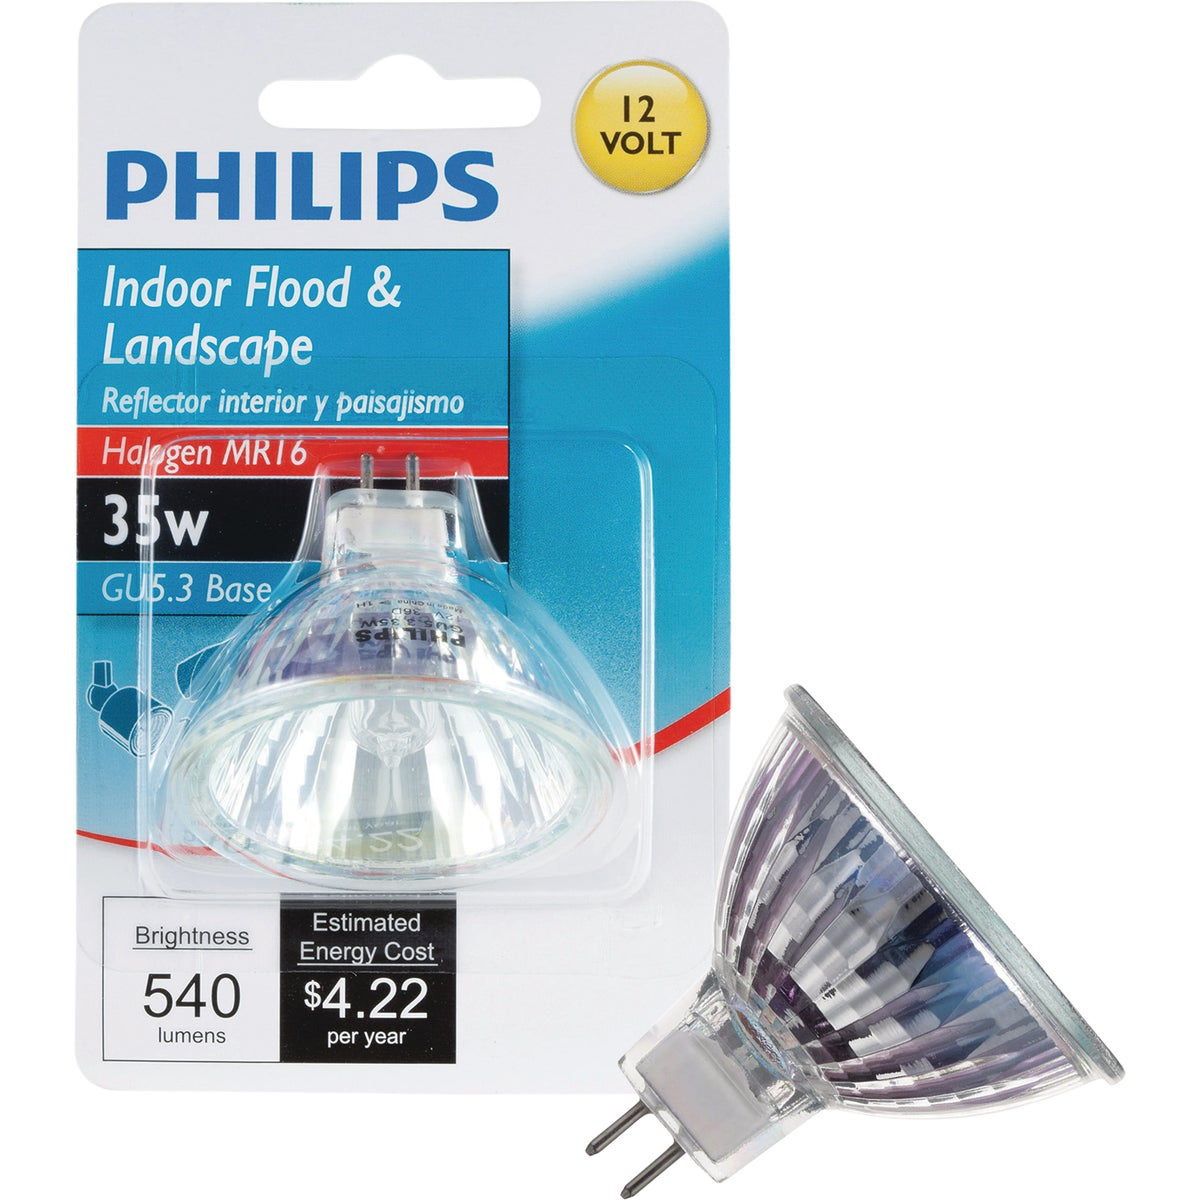 35W MR16 HLGN FLOOD BULB